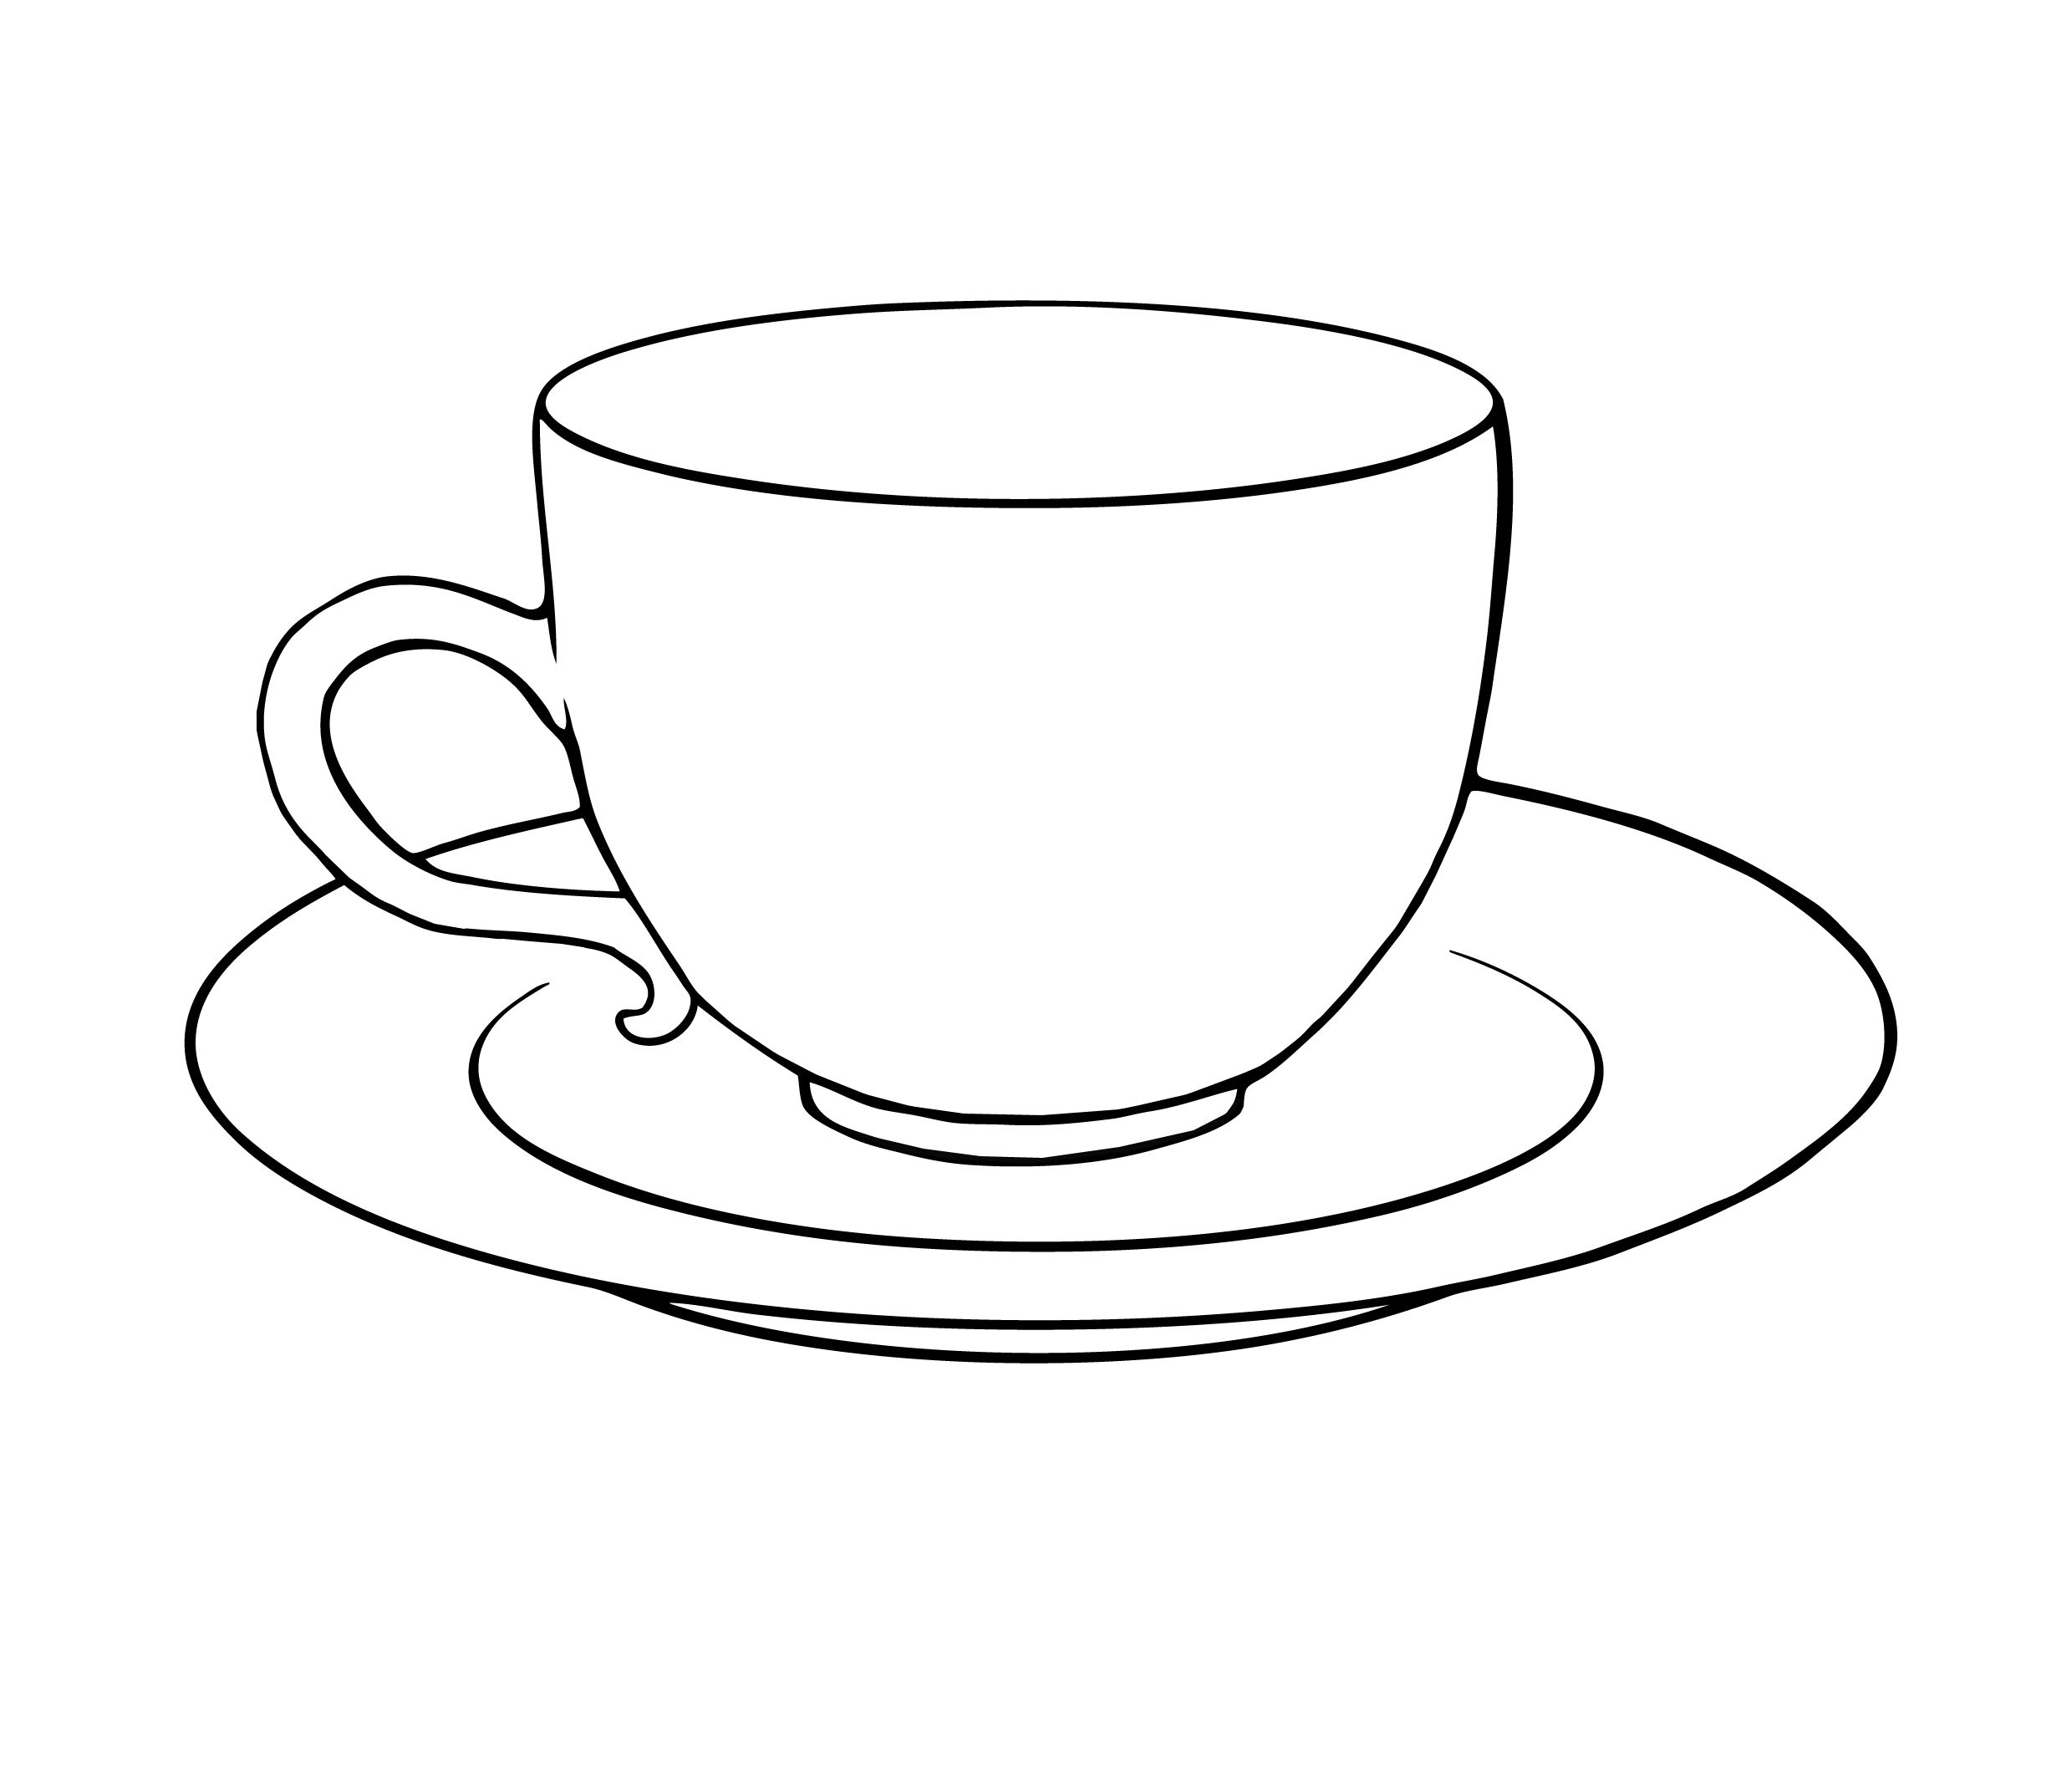 Tea cup and saucer. Cups clipart sketch